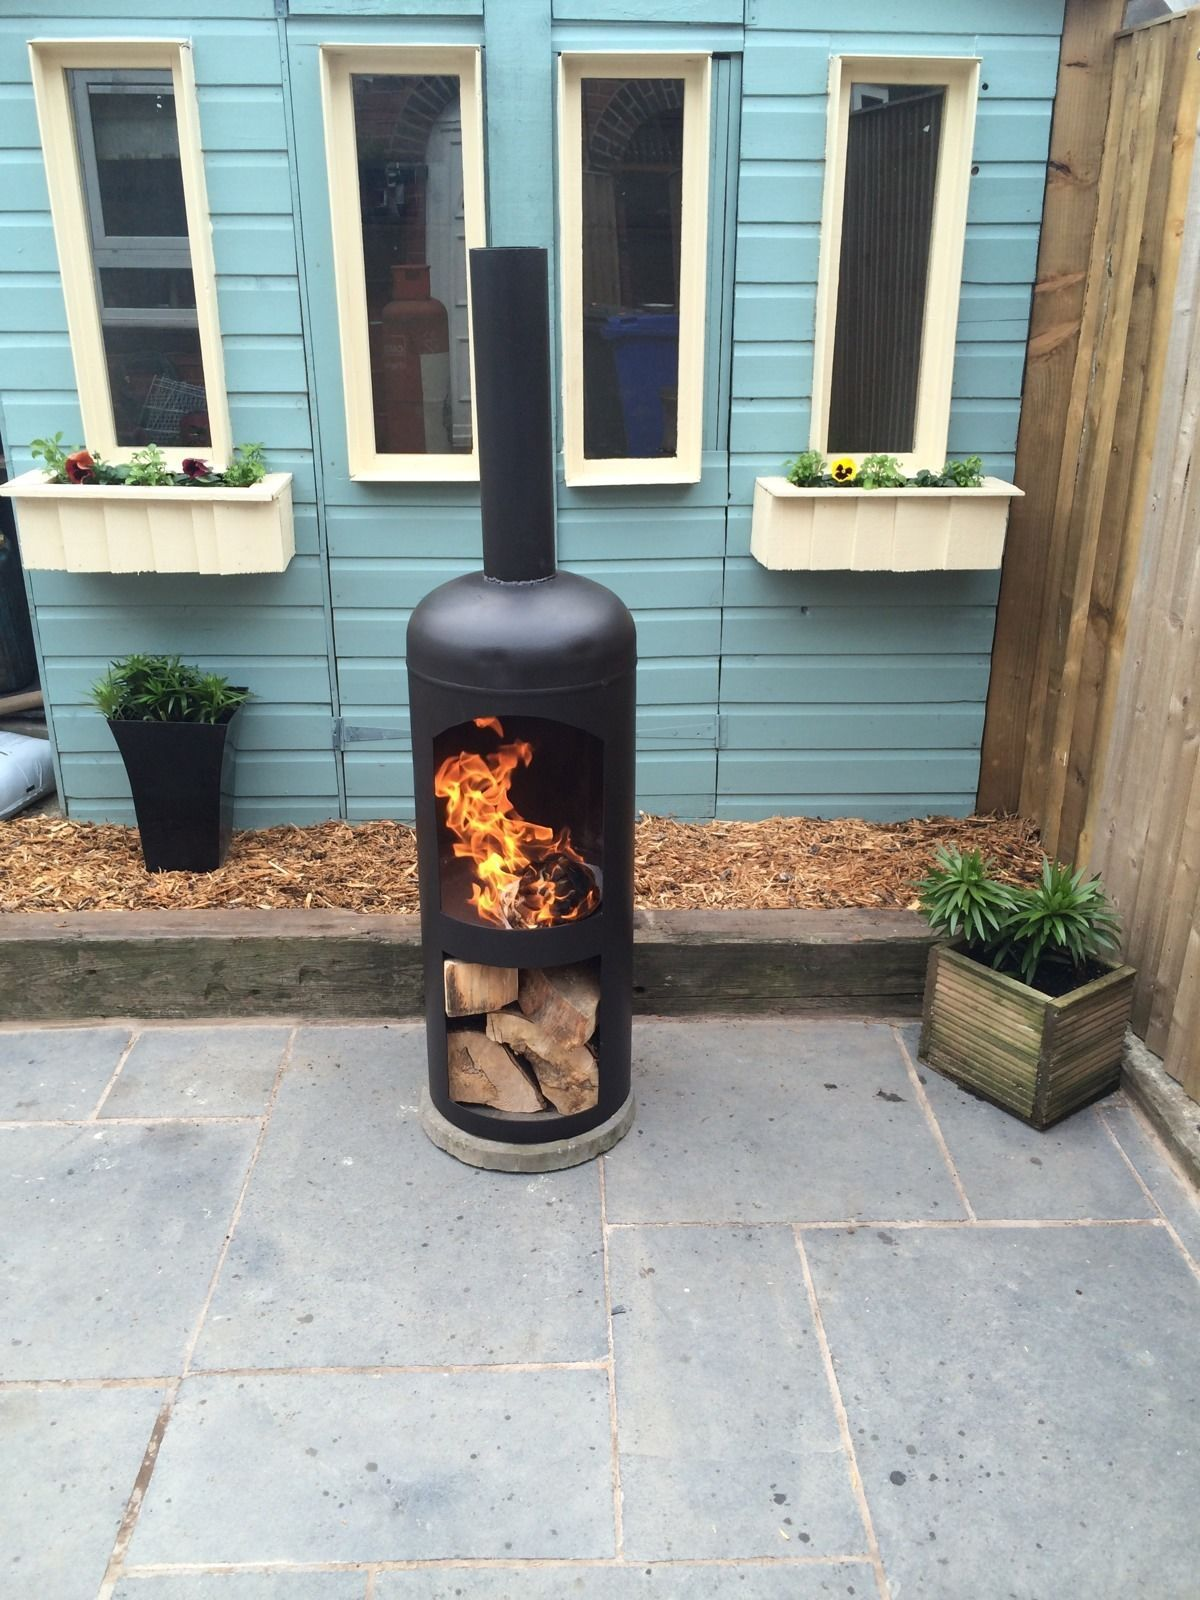 chimenea patio garden woodburner log woodburning stove gas bottle